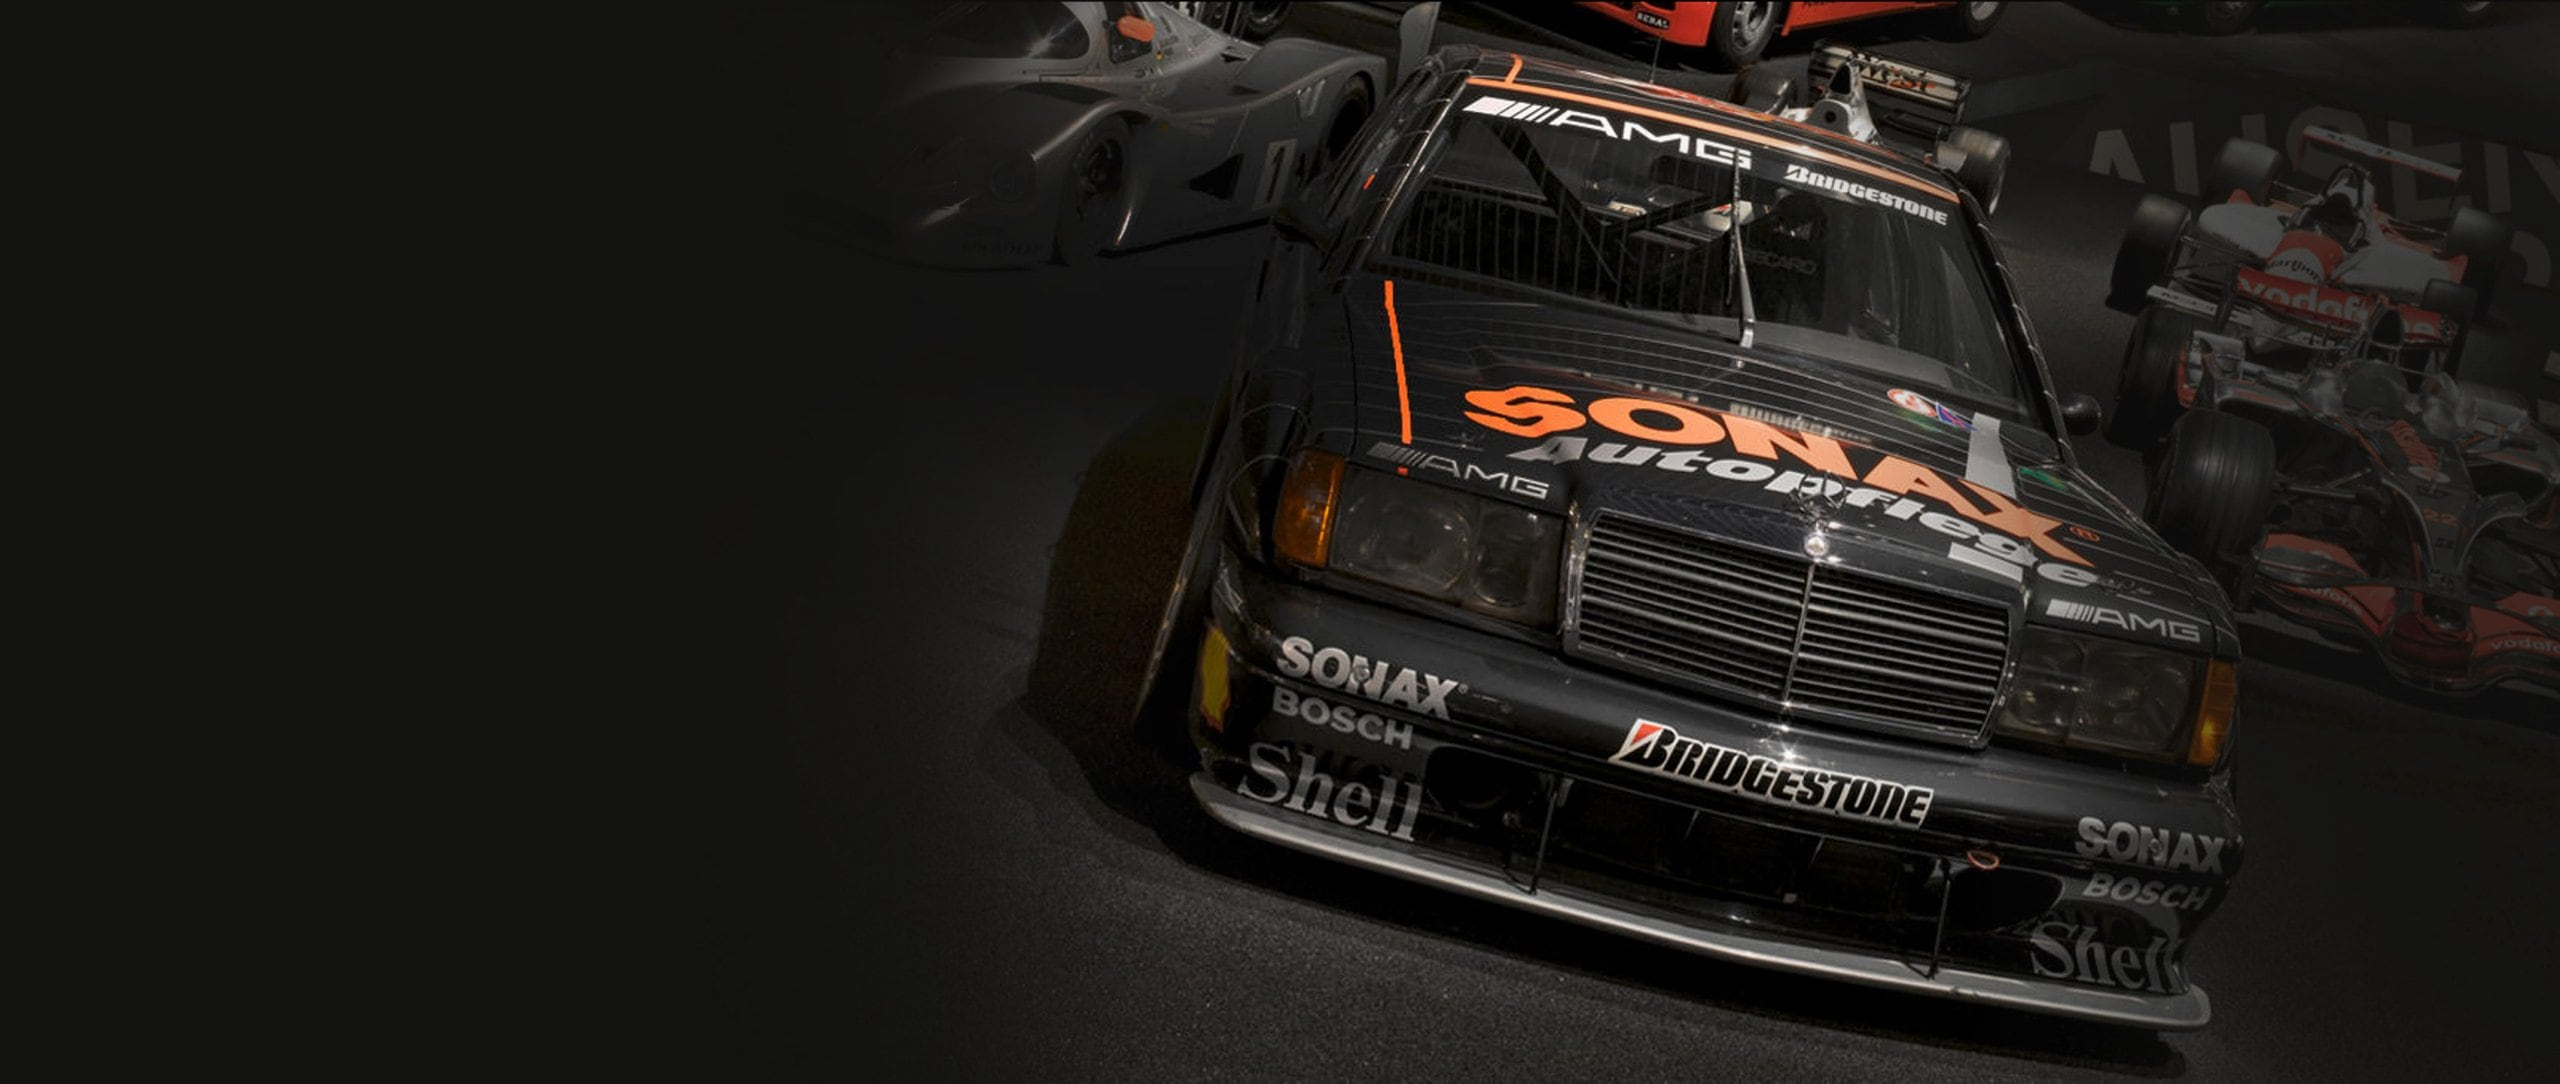 AMG-Mercedes 190 E 2.5-16 Evolution II DTM touring car.